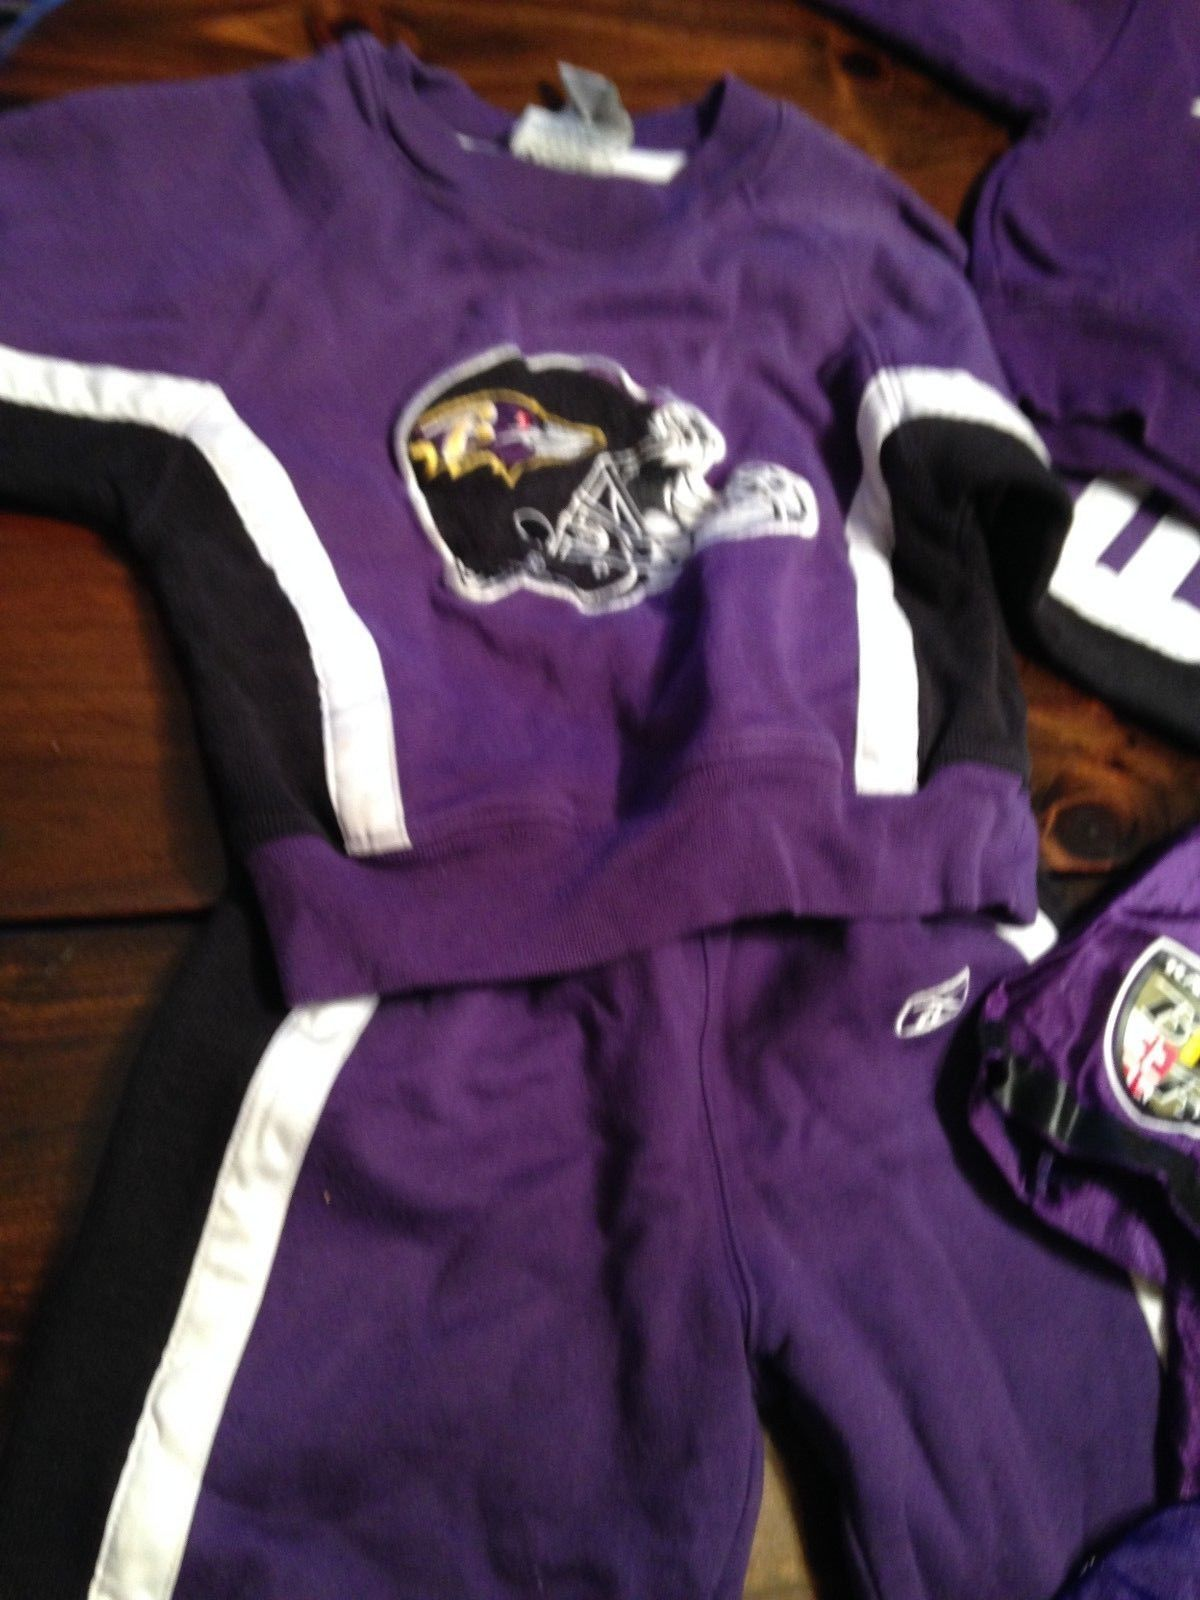 promo code 13bb2 5a7c2 Kids – Baltimore Ravens Clothing for Kids-18mos to 4T NFL ...